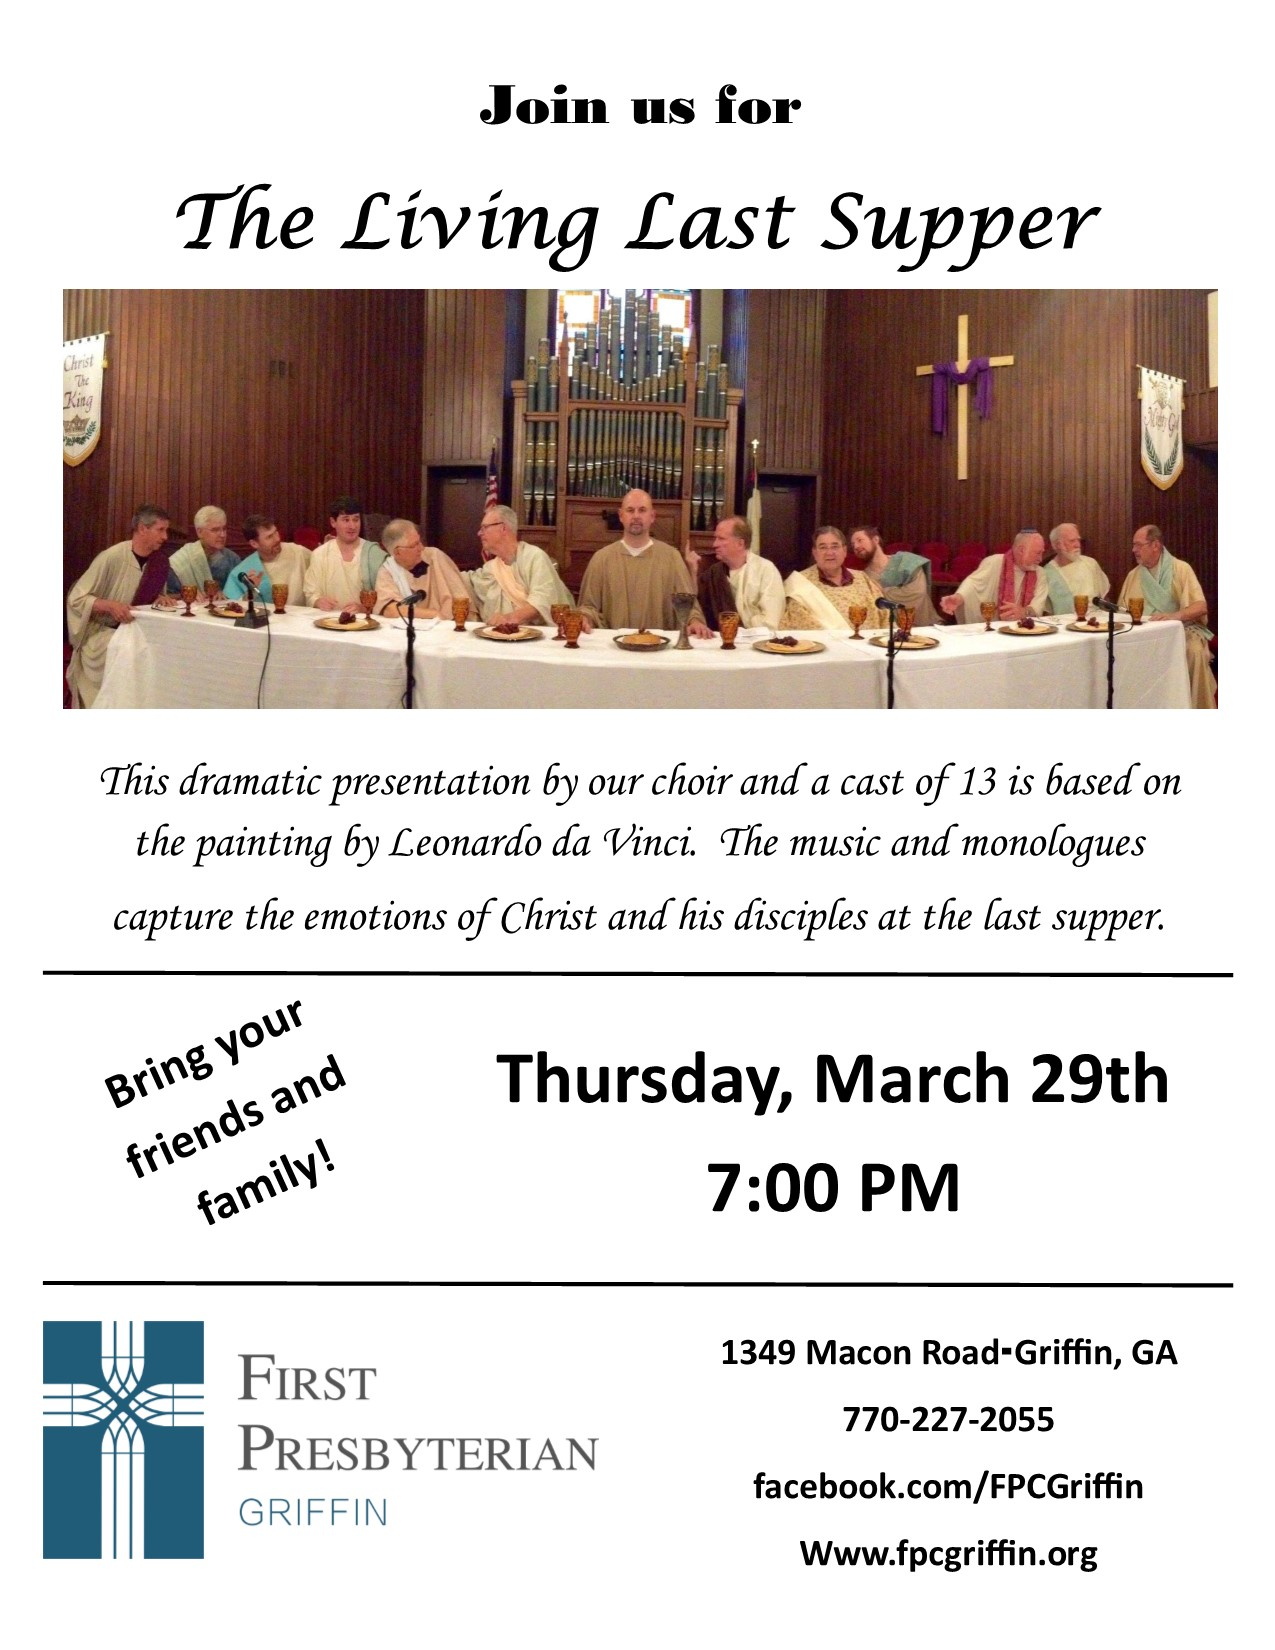 First Presbyterian's The Living Last Supper